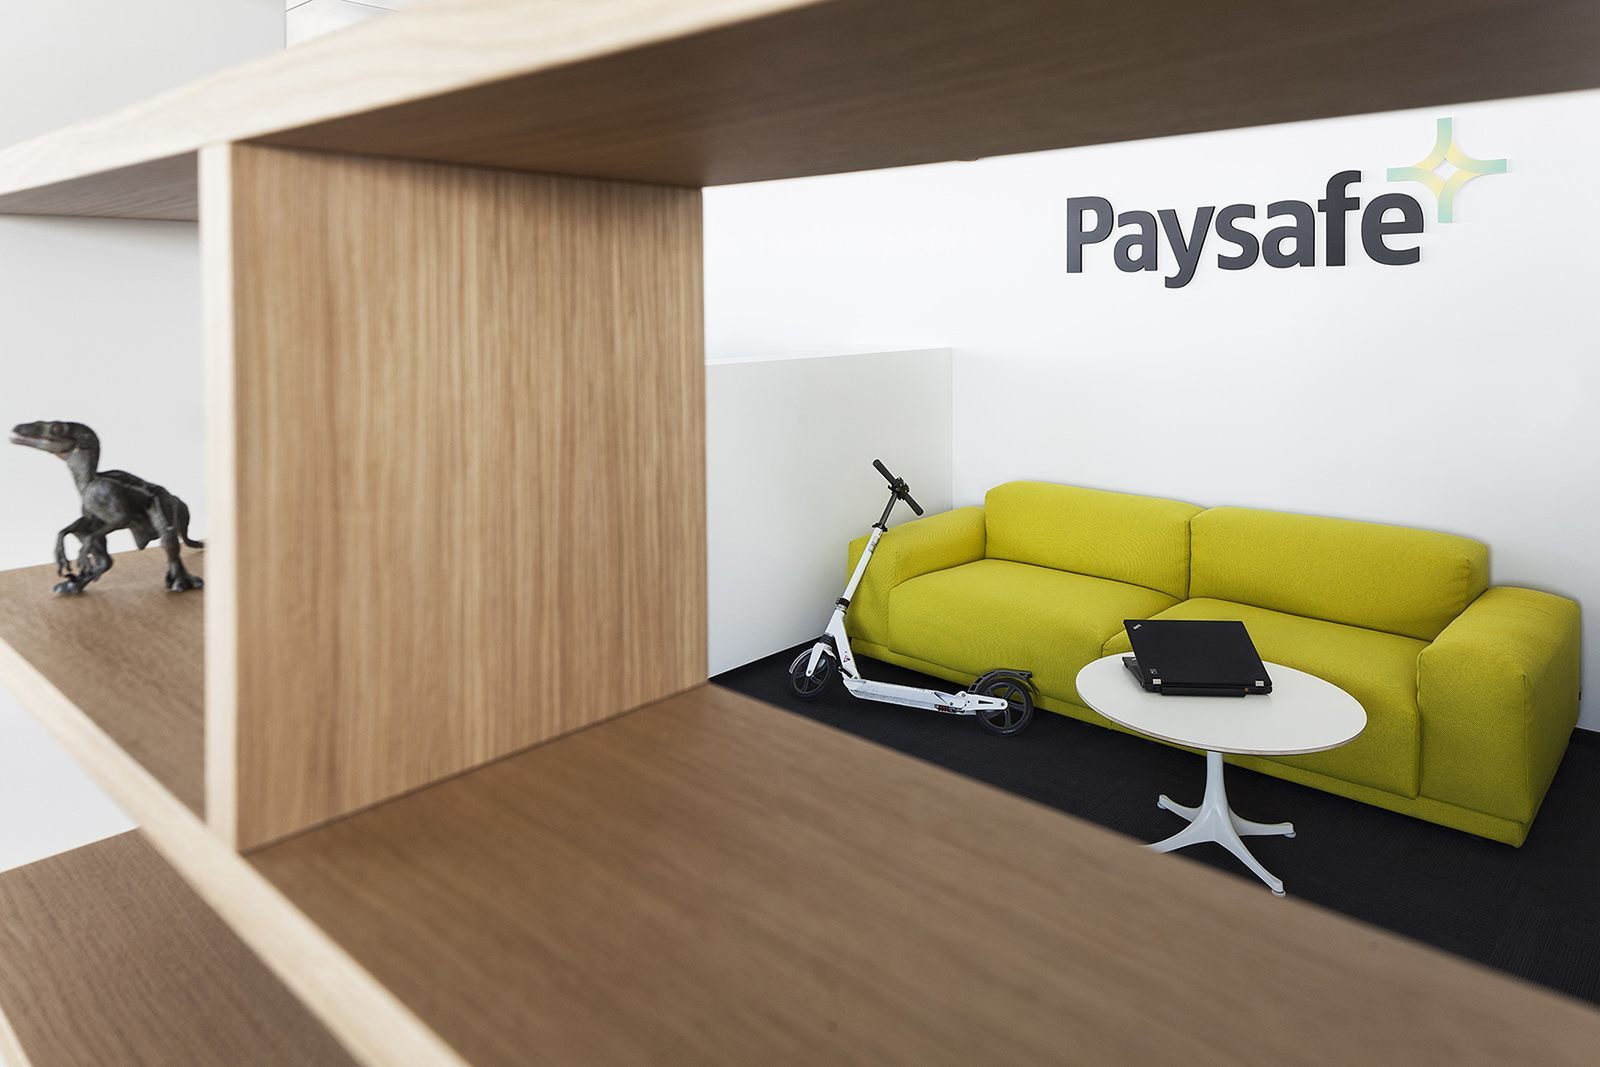 ���� ���� ���� ���� ?Paysafe? Paysafe-office-devel